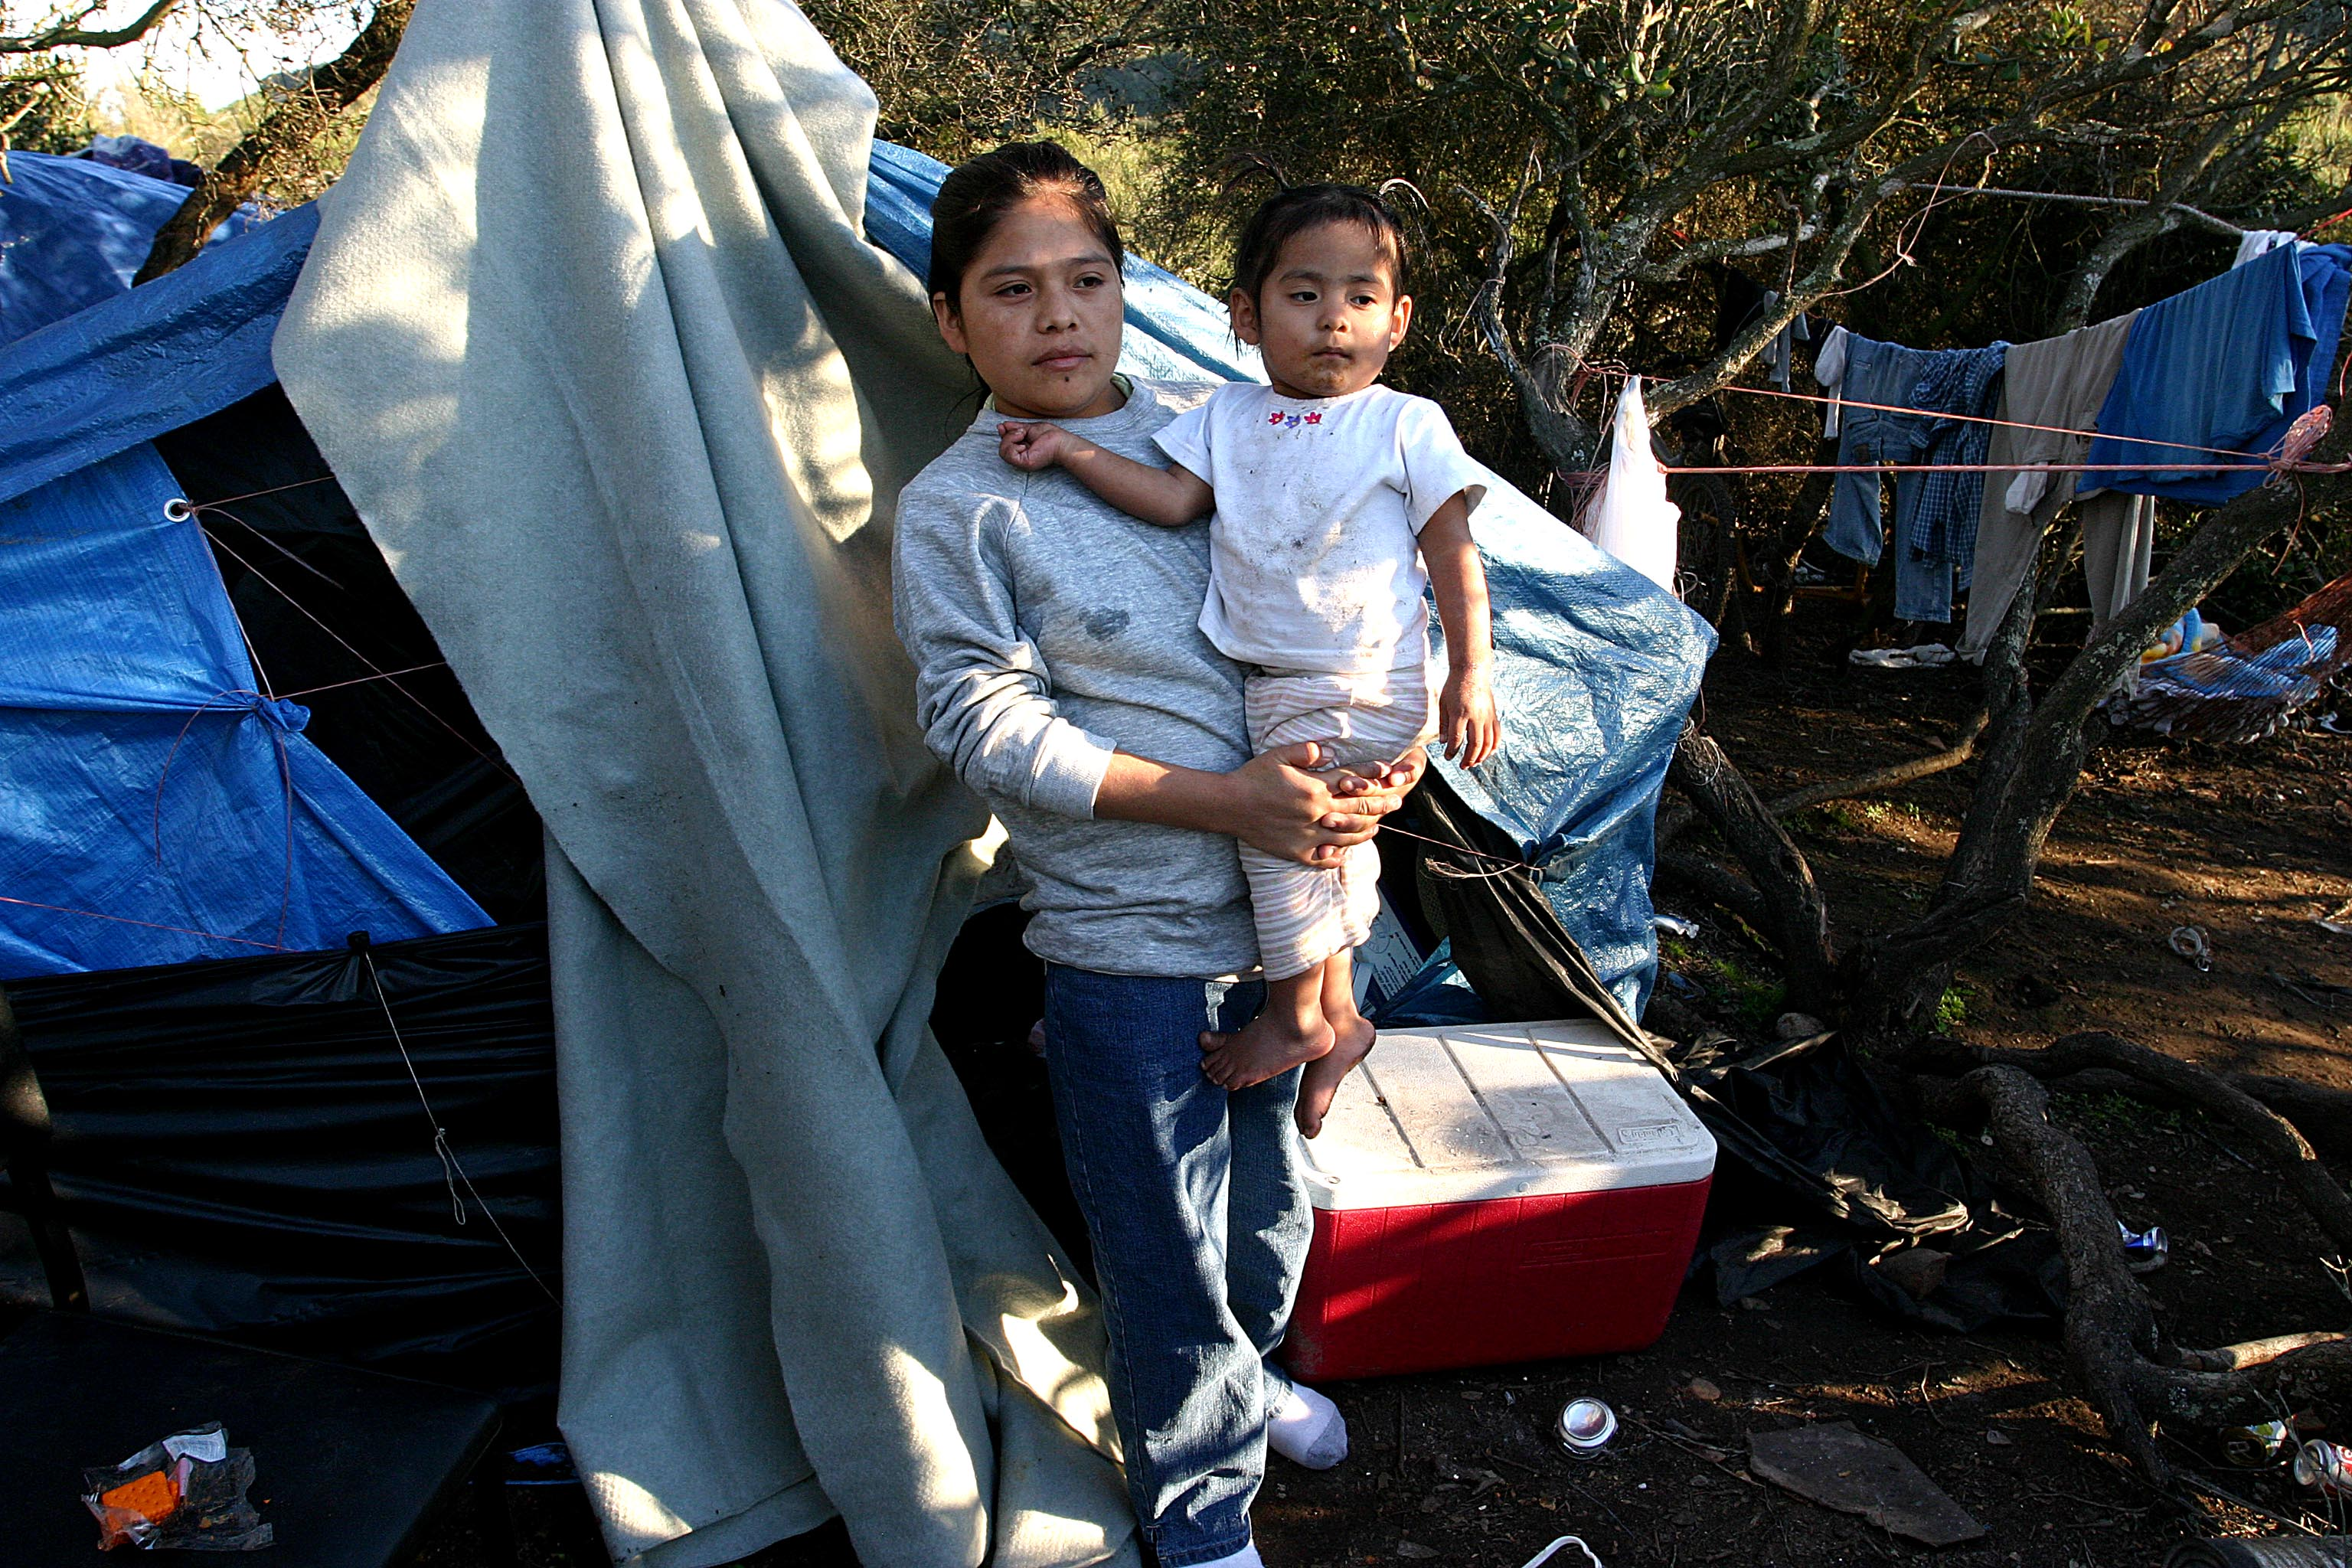 dnbsandiego25.jpg  SAN DIEGO, CA - 1FEBRUARY05 - Indigenous Mixtec and Zapotec farm workers from Oaxaca, living in a camp on a hillside outside Delmar.  Copyright David Bacon